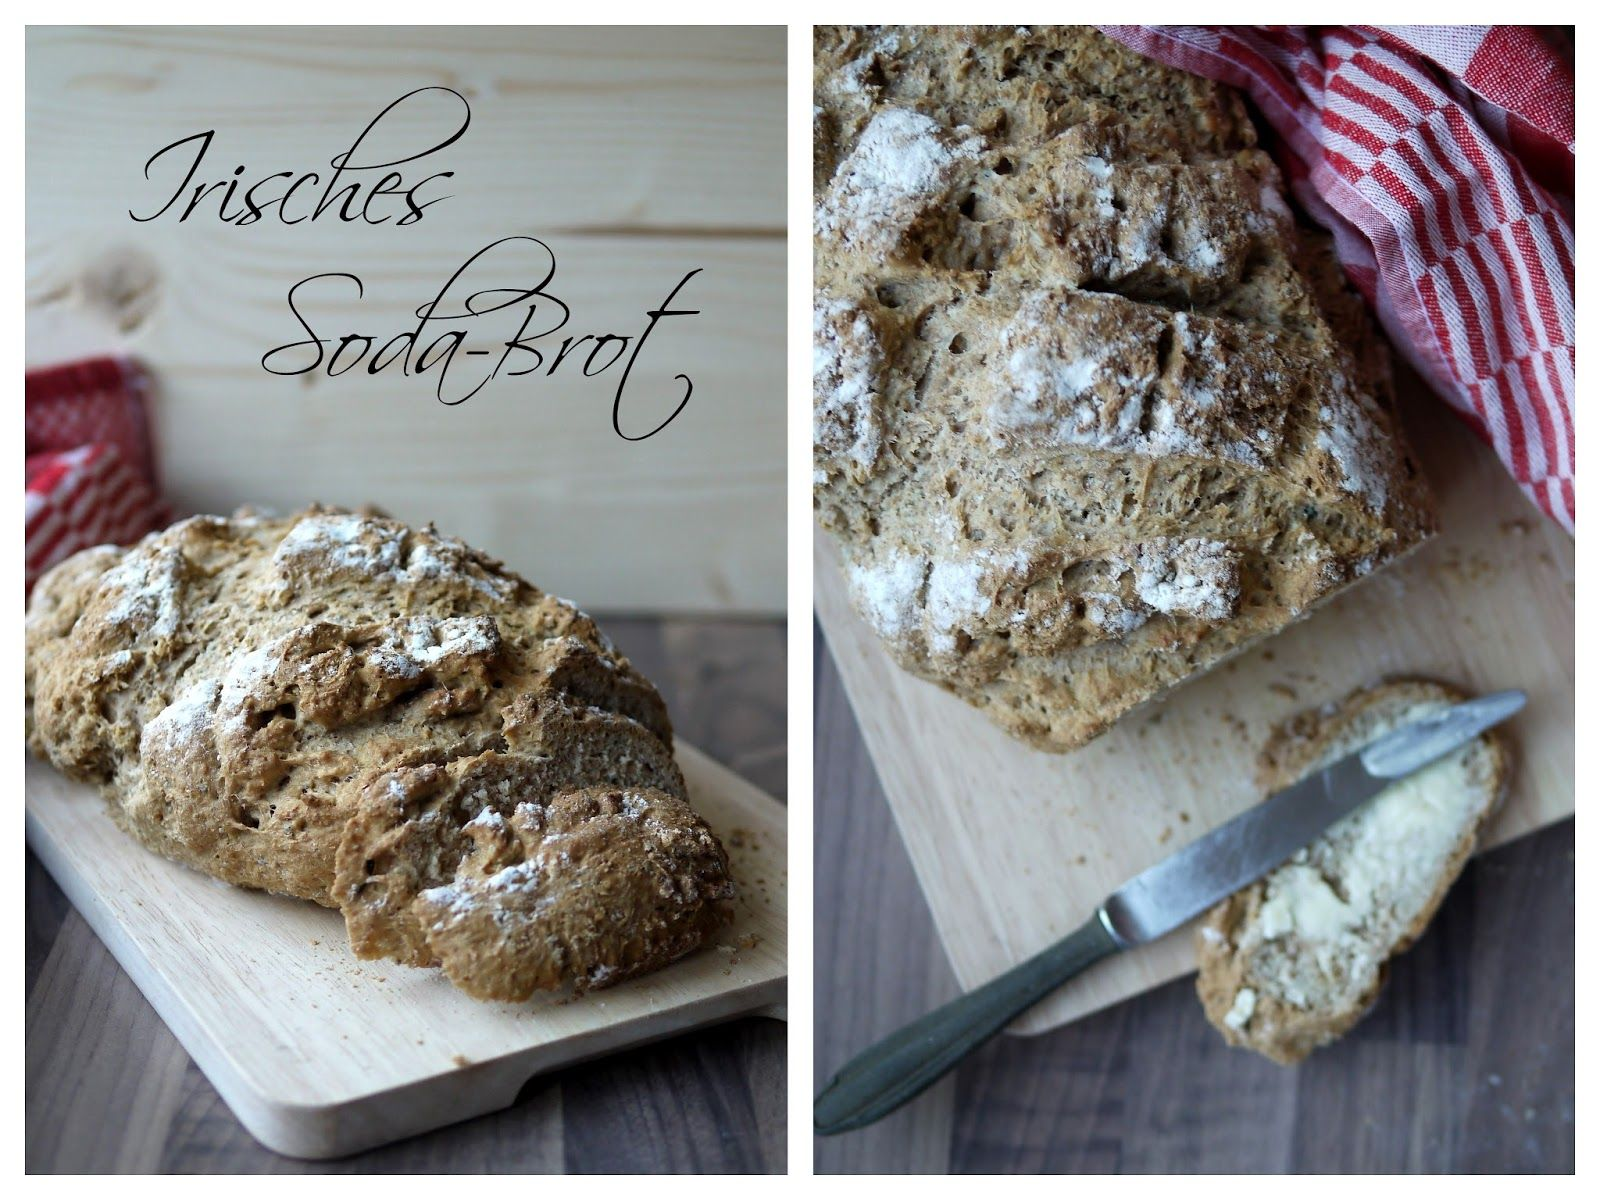 Backen Soda Irisches Soda Brot Mit Ein Paar Macken For The Sweet